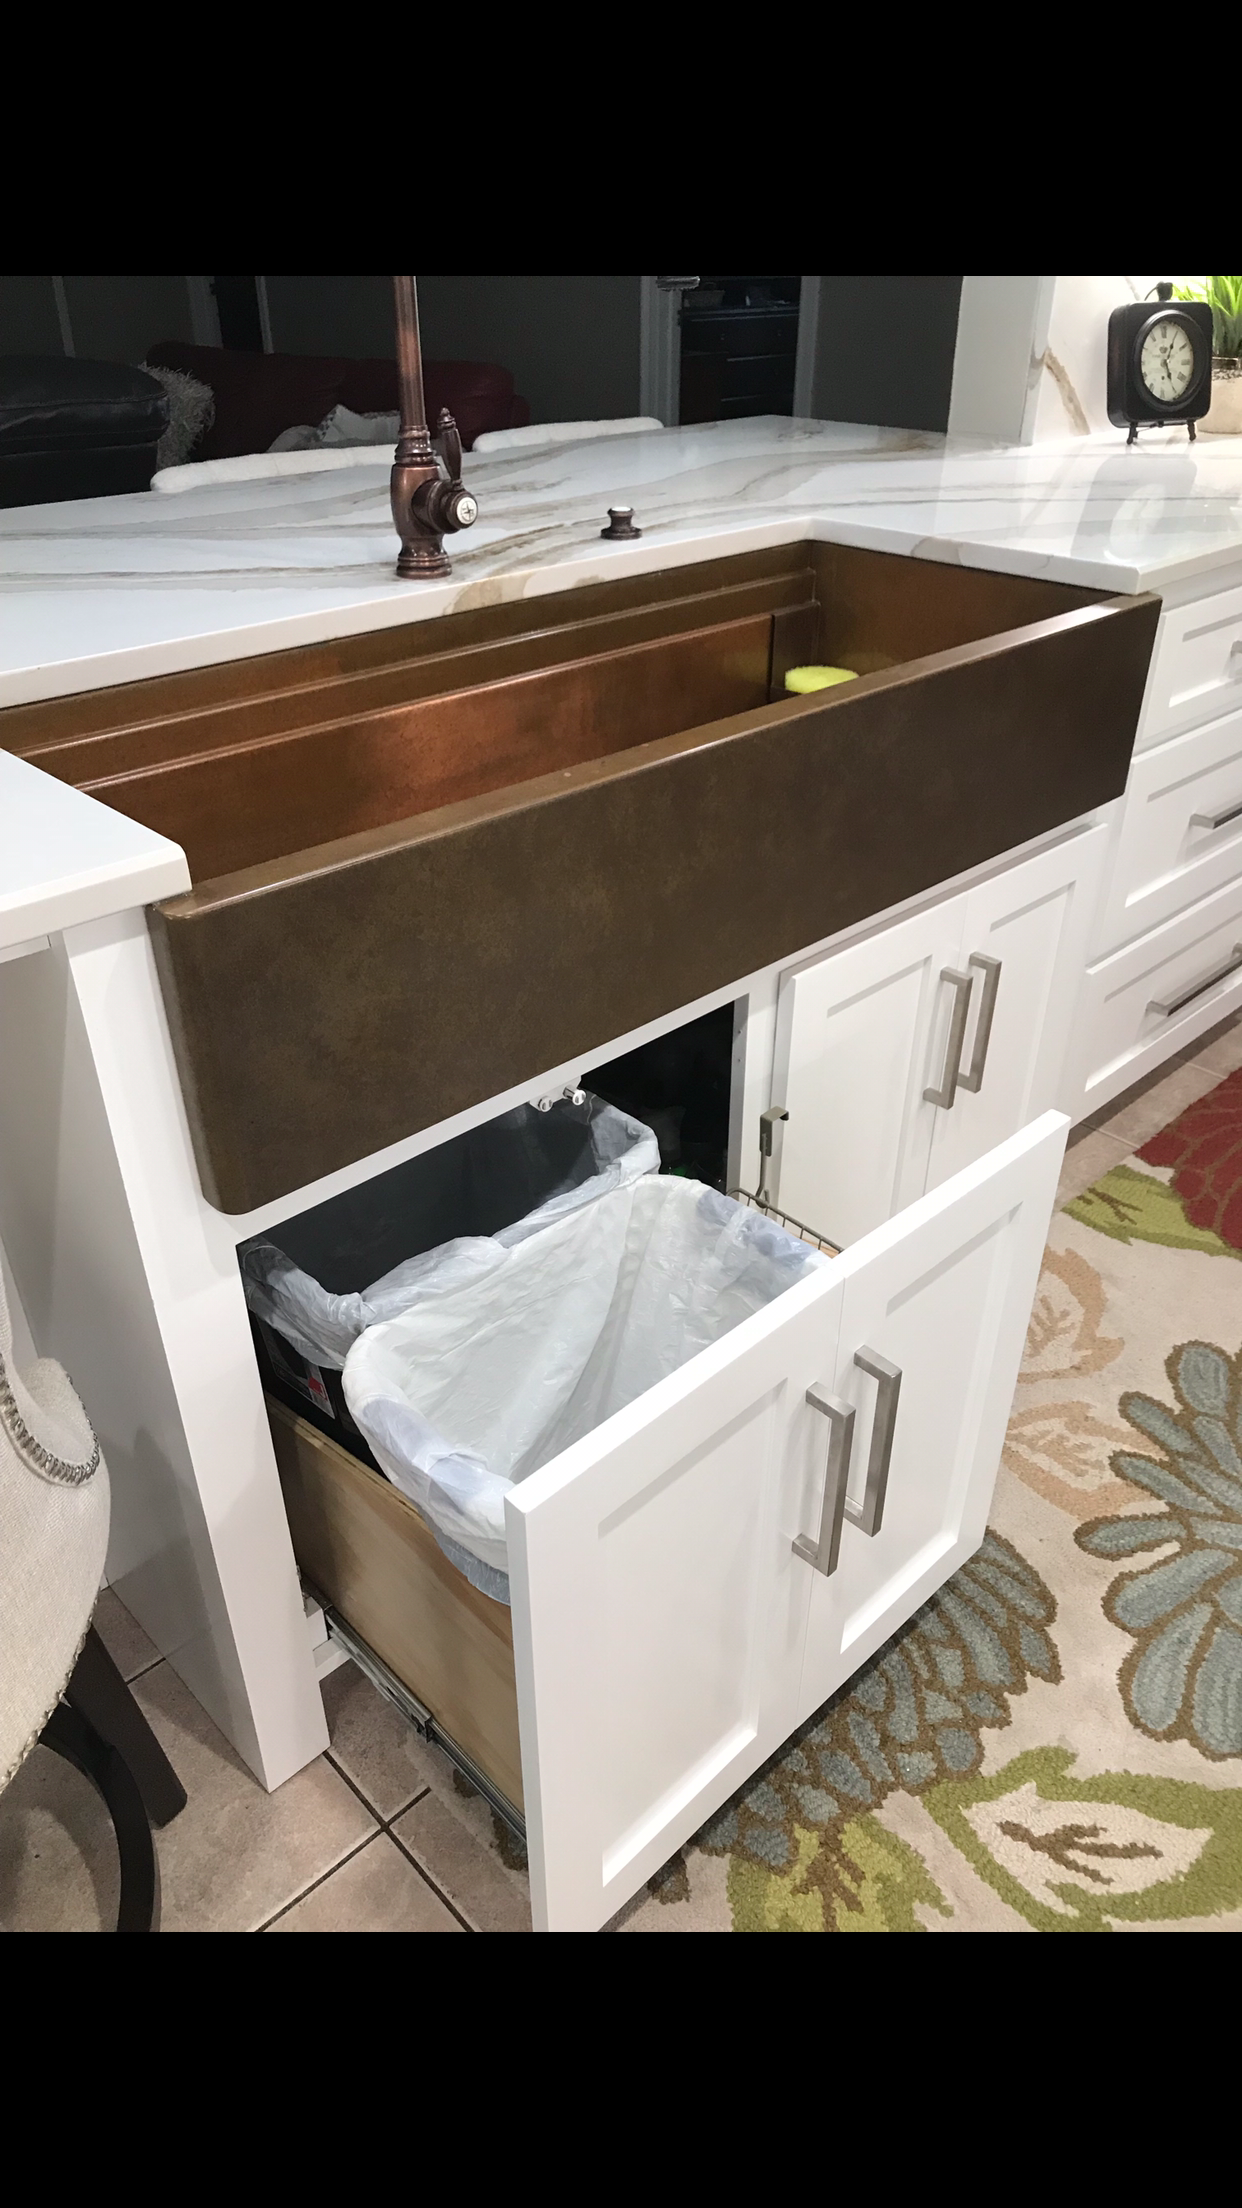 Copper Farmhouse Sink 48 Inches White Shaker Style Cabinets